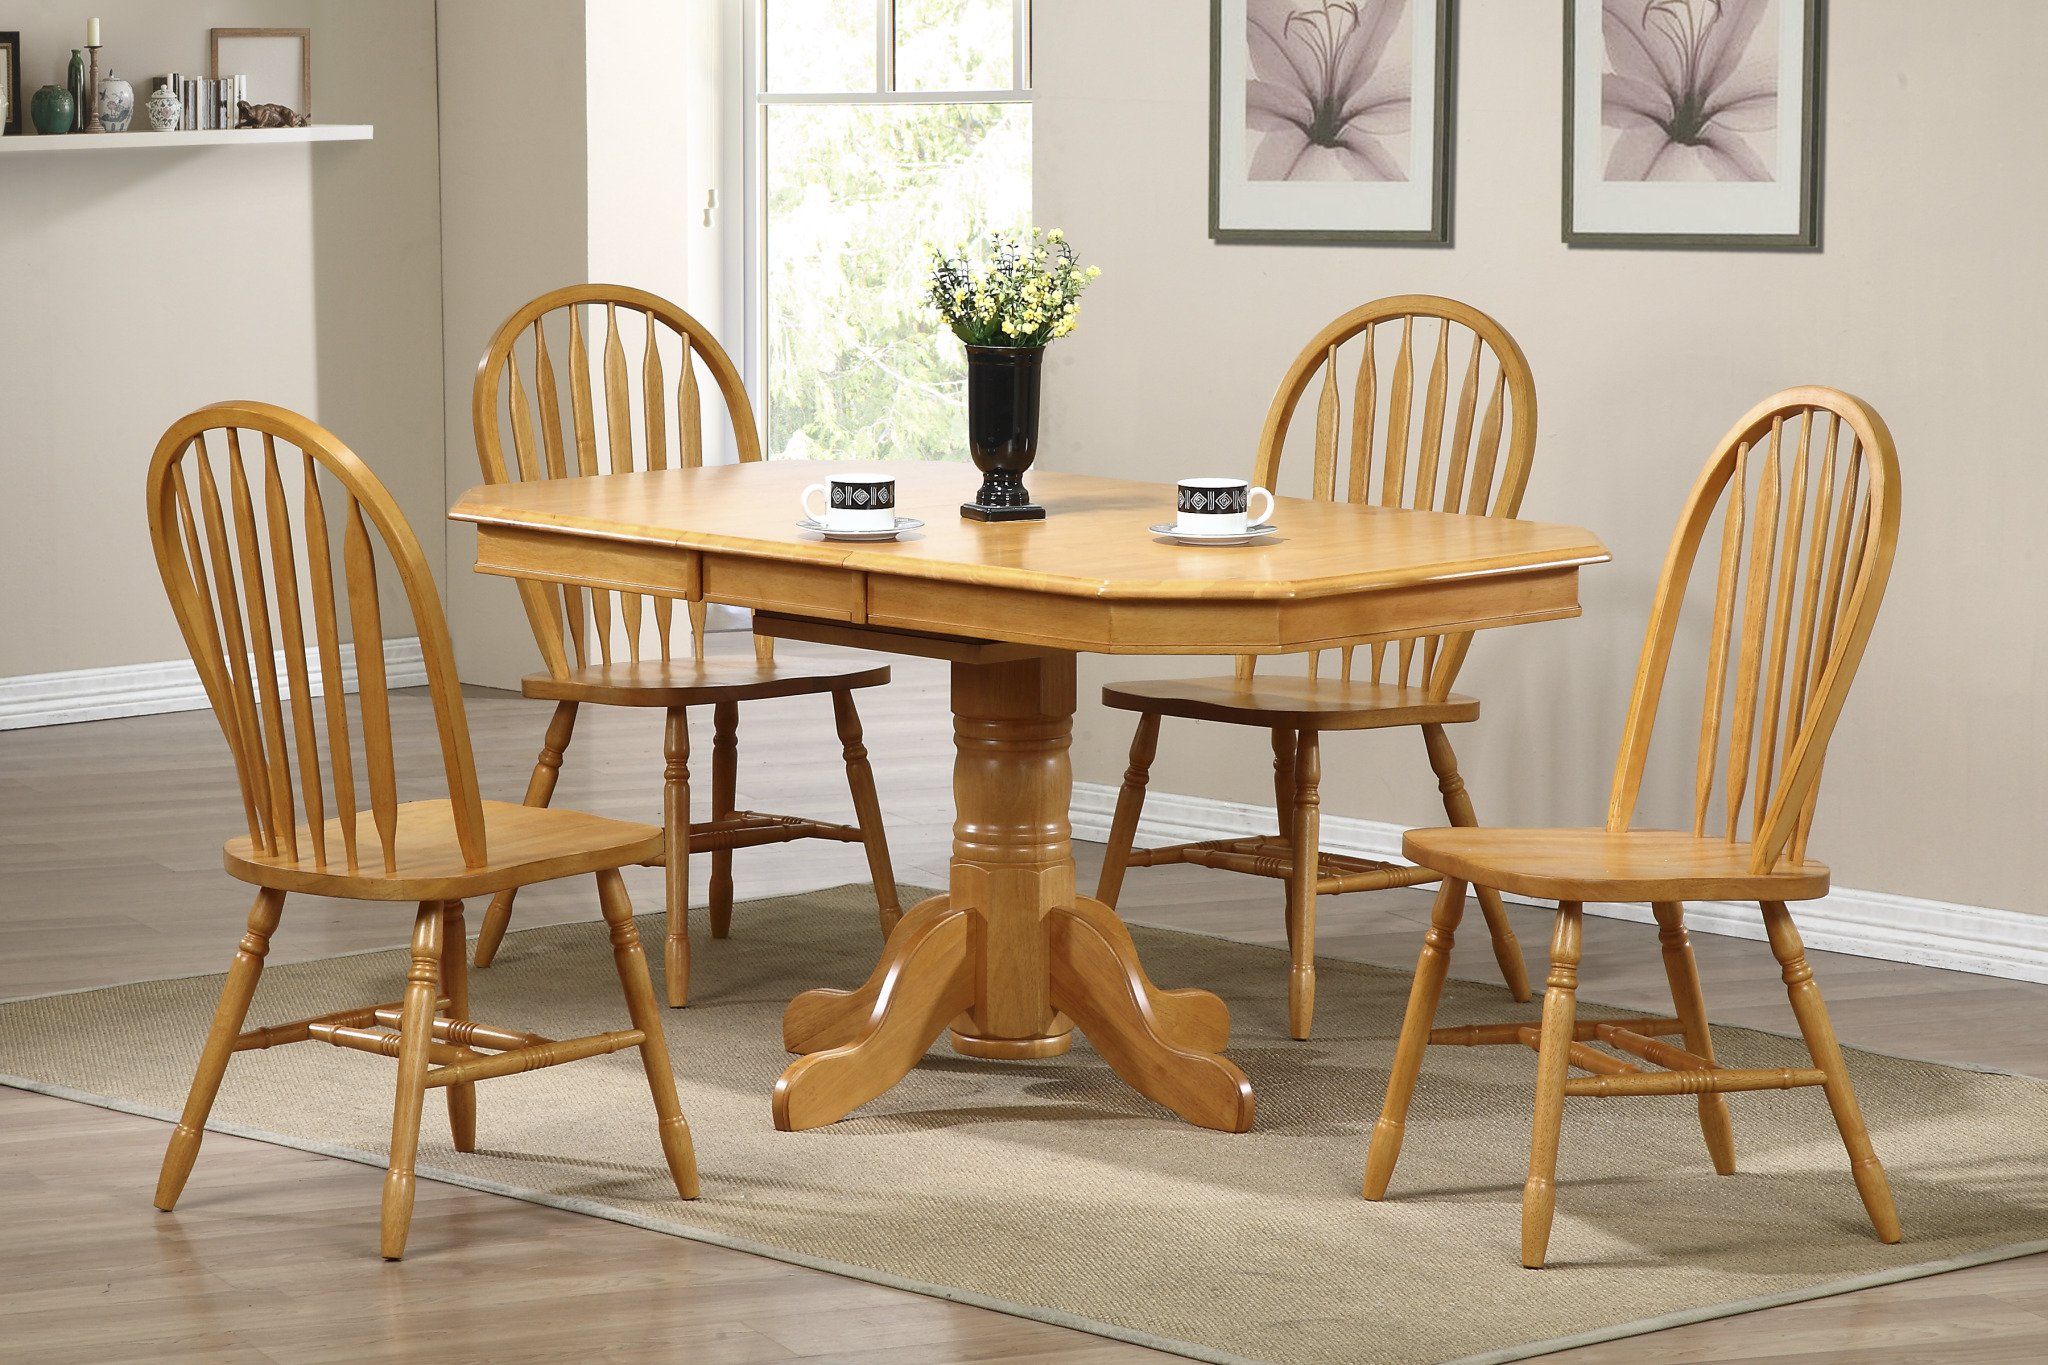 Sunset Trading Arrowback Dining Chair, Set of 2, 38'', Light Oak by Sunset Trading (Image #5)